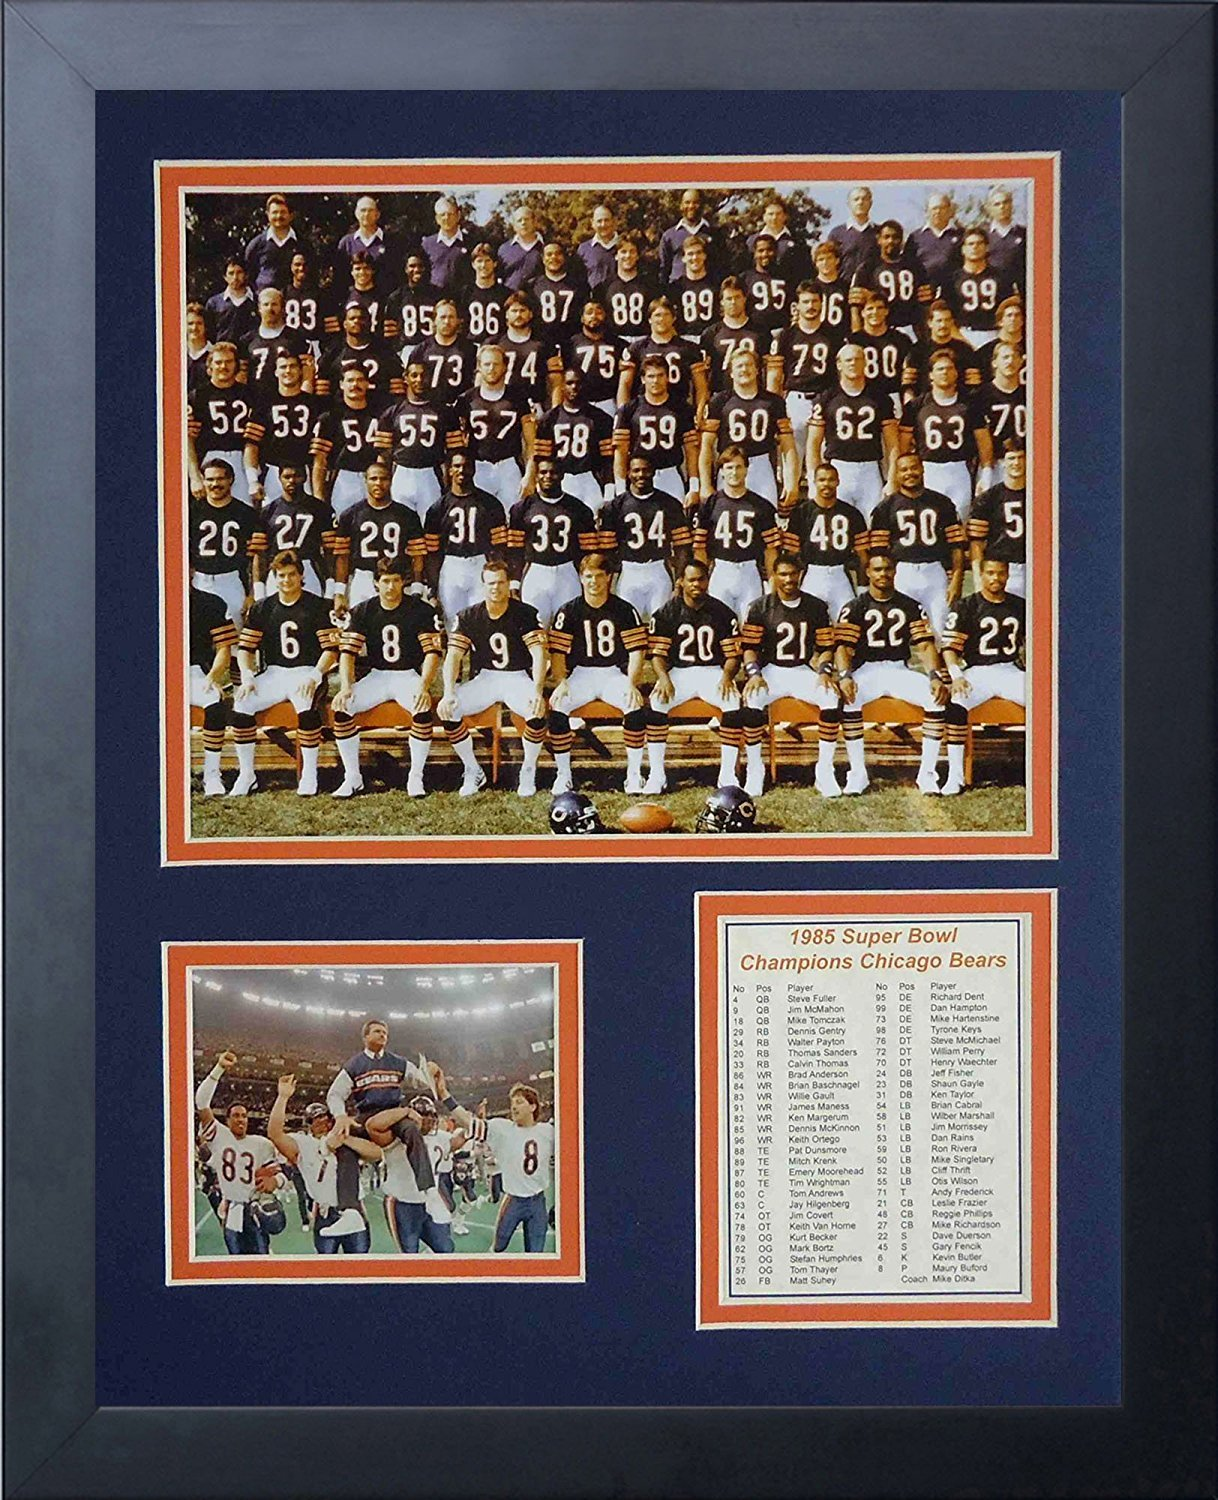 11x14-Inch Legends Never Die 1985 Chicago Bears Framed Photo Collage